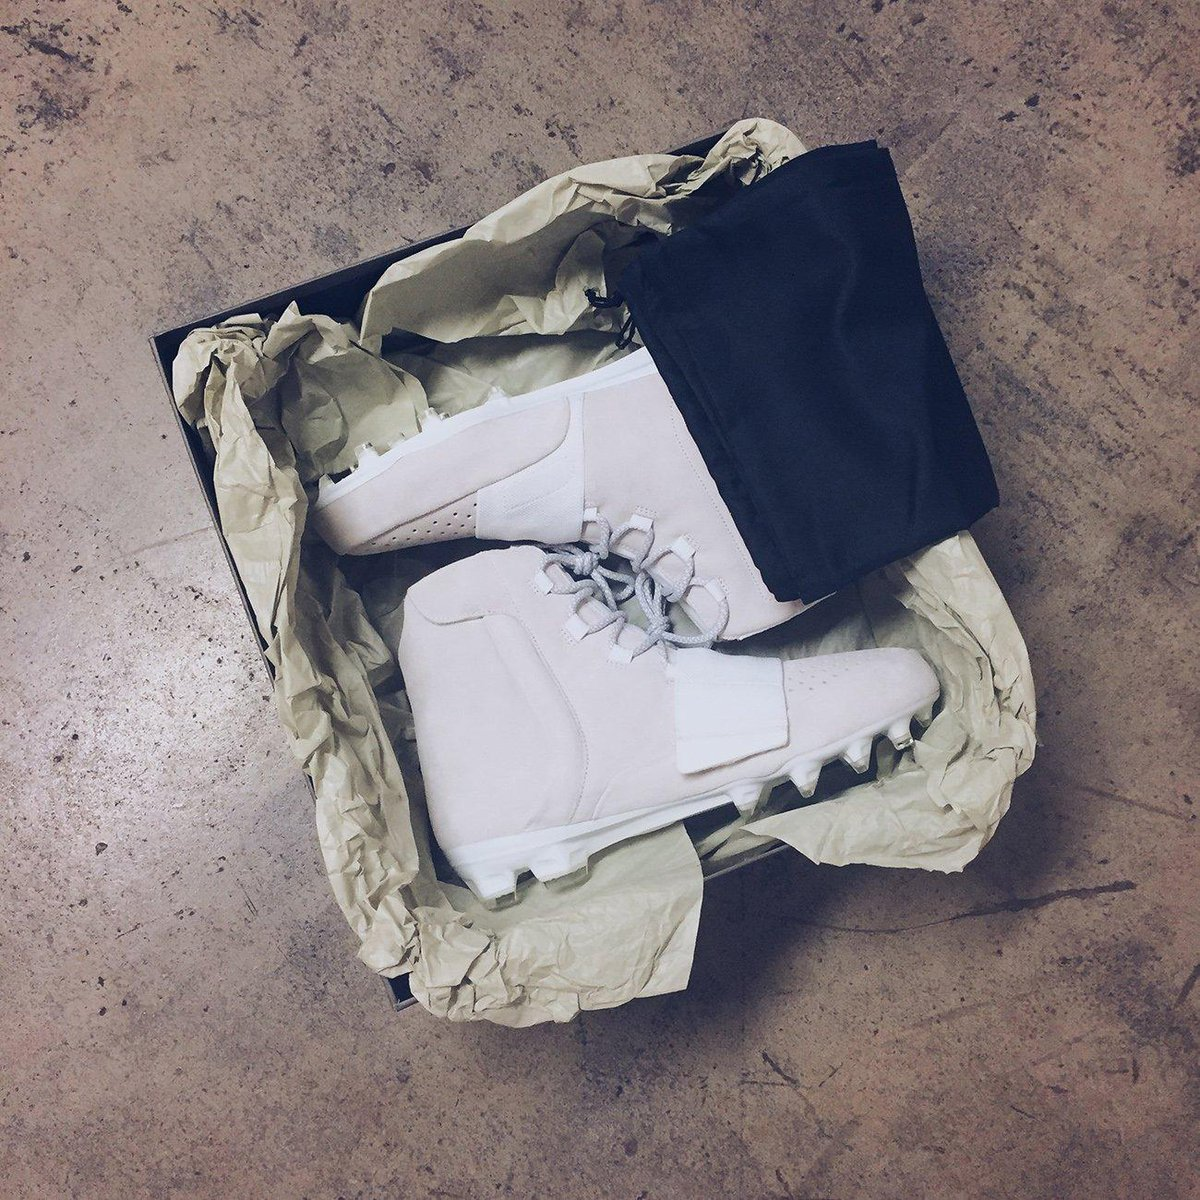 Von Miller is wearing the first ever Yeezy football cleats in tonight's game. (via @Millerlite40)